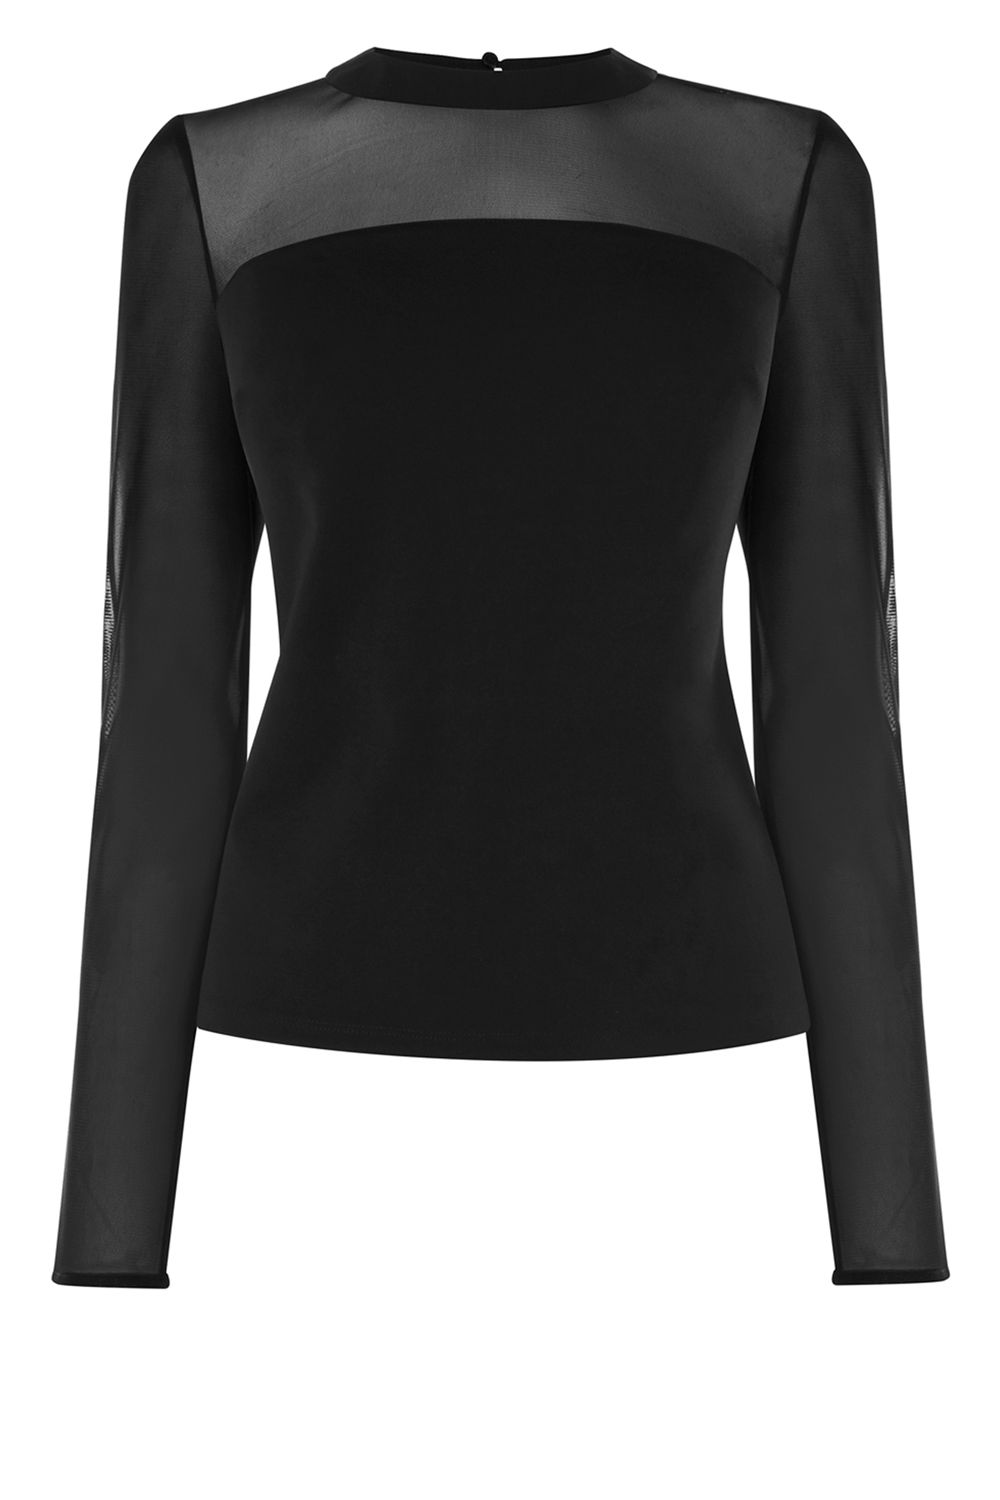 Coast Valetta Mesh Top, Black